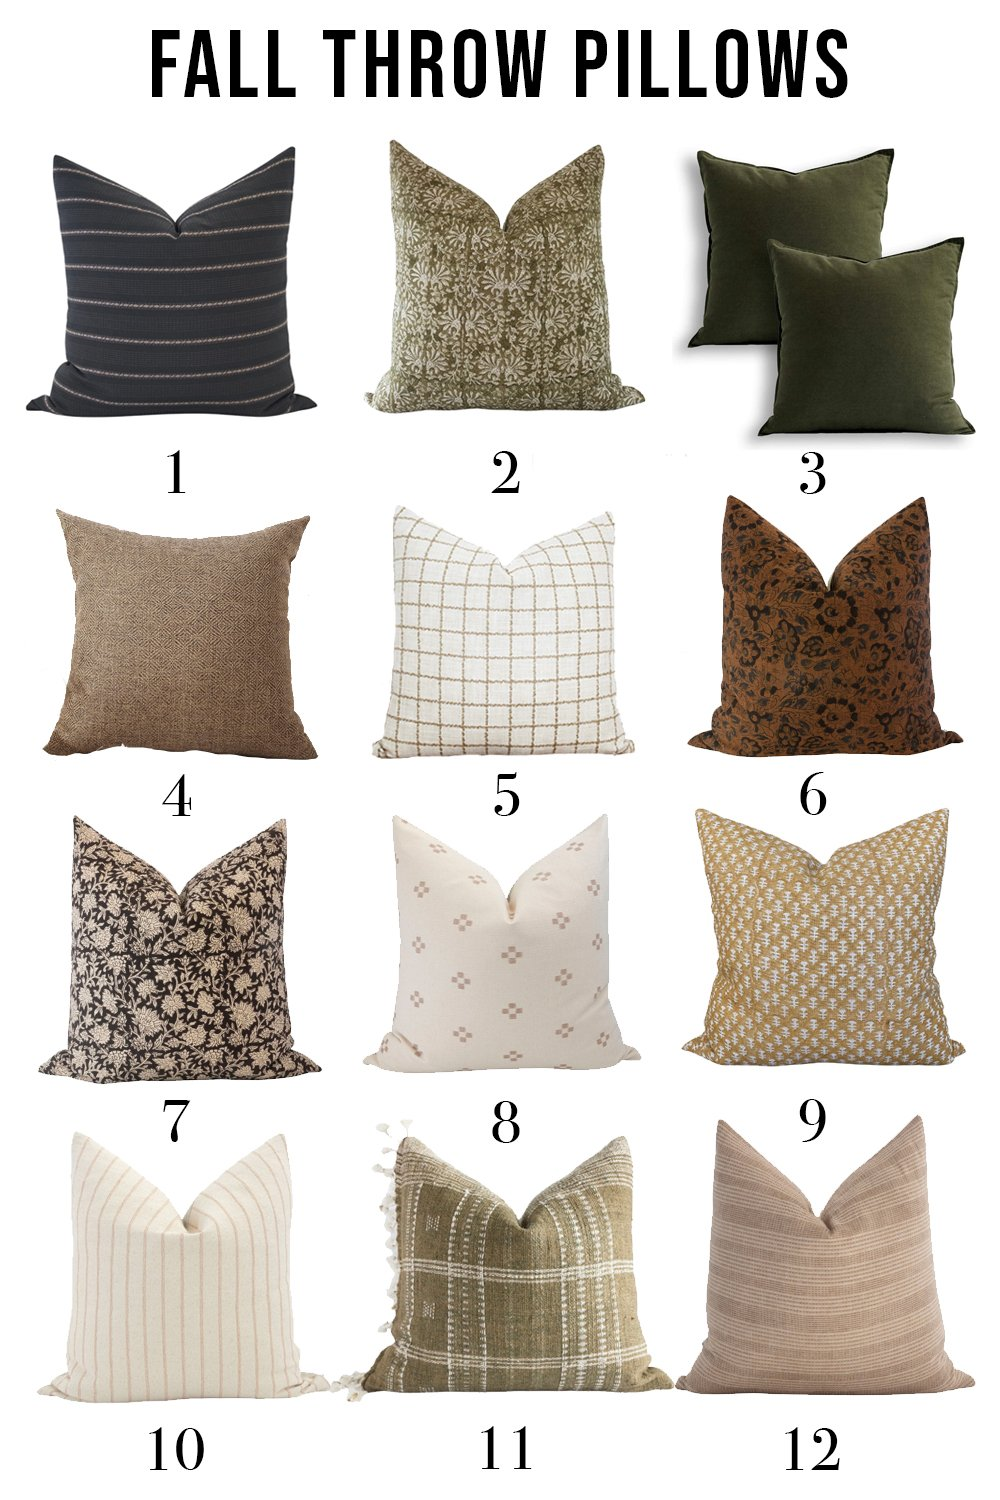 Fall Throw Pillows and Blankets Roundup